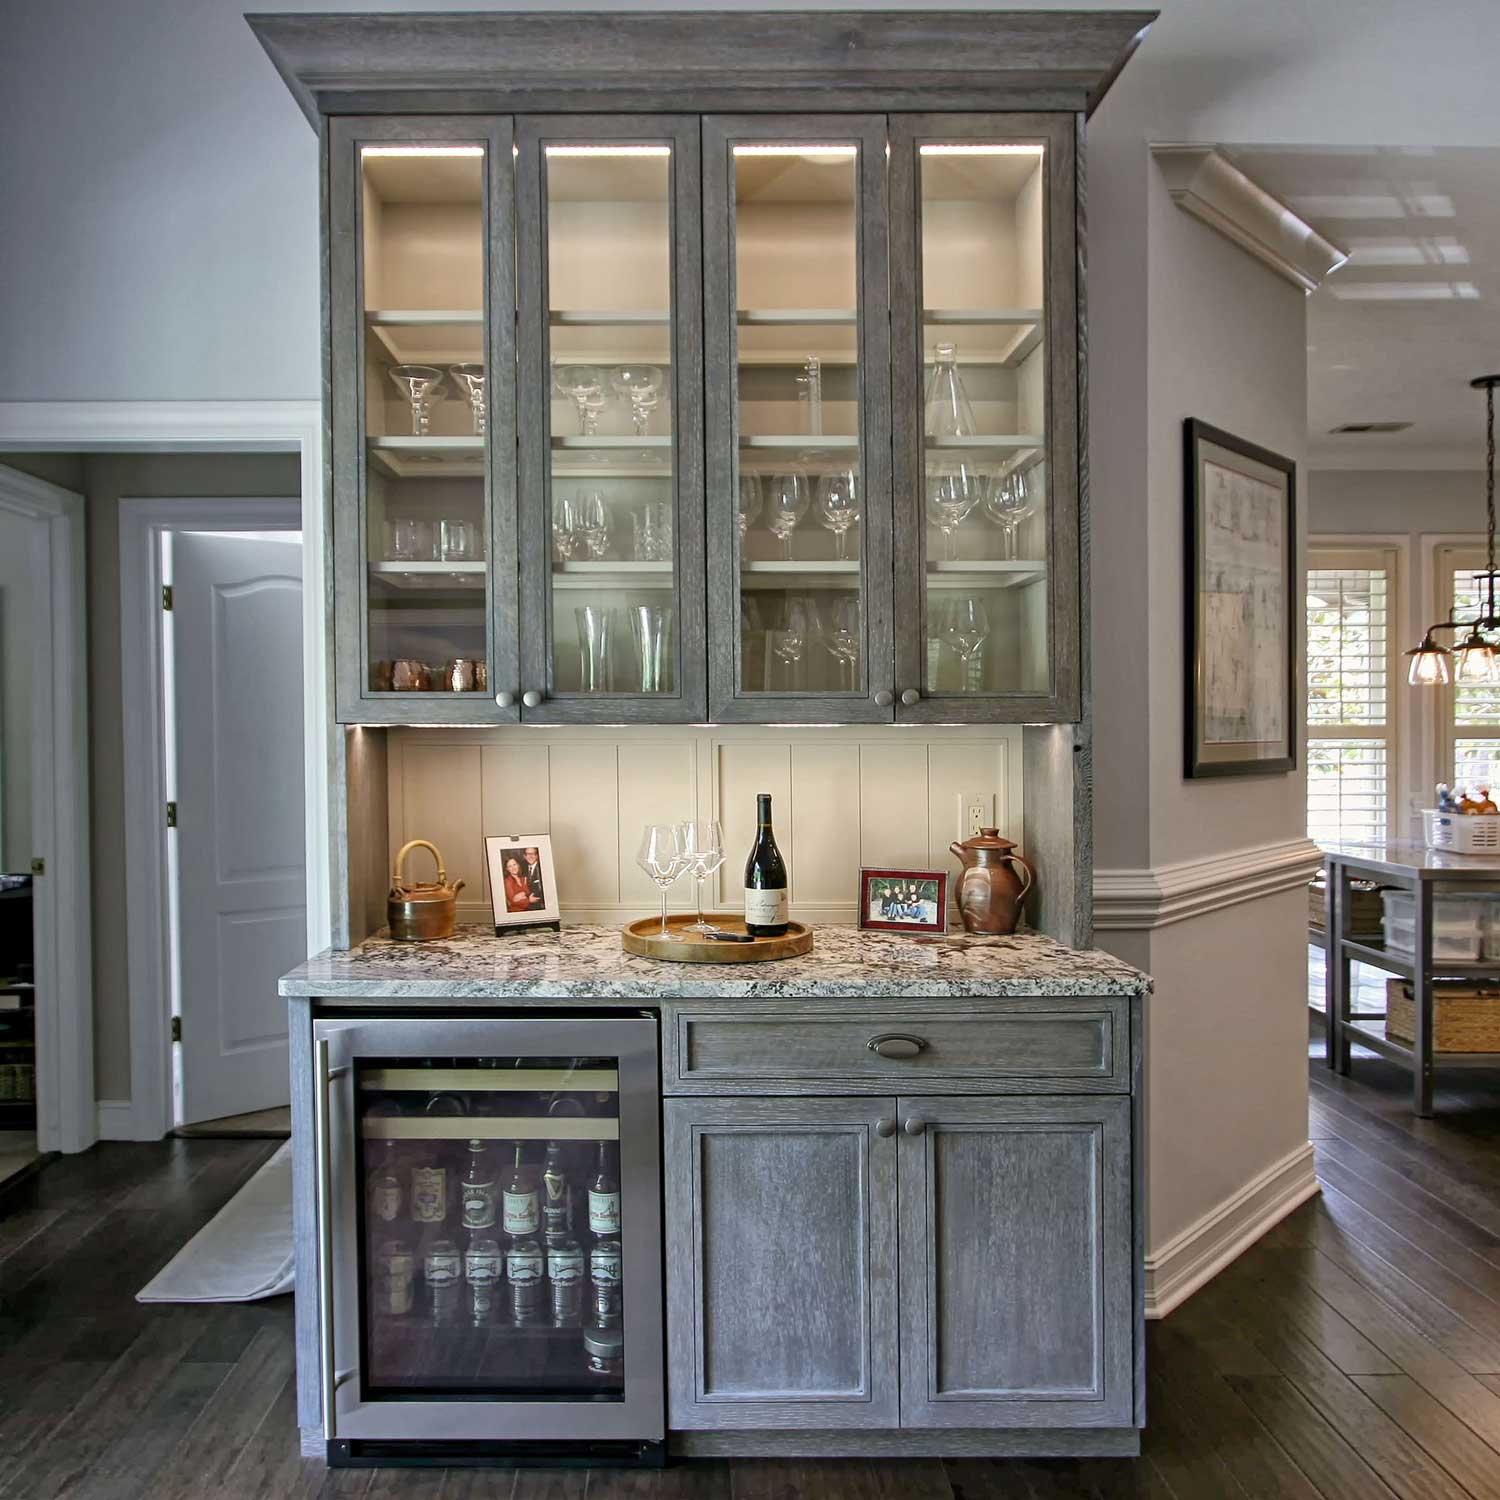 Ideas For Kitchen With Oak Cabinets: A Cerused Oak Kitchen Remodel Project